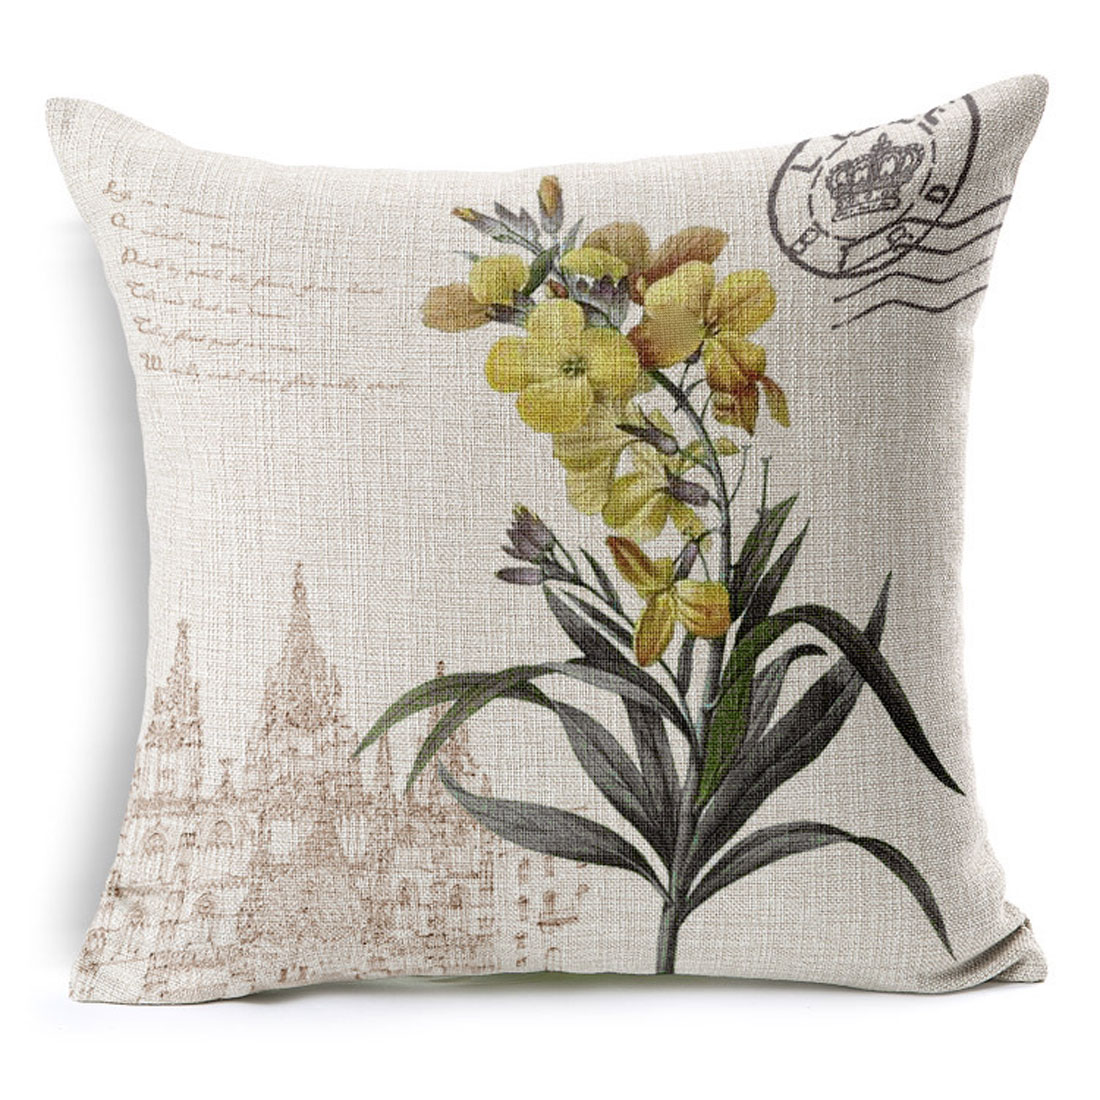 Household Sofa Couch Cotton Linen Jonquil Pattern Waist Throw Cushion Cover Pillow Case